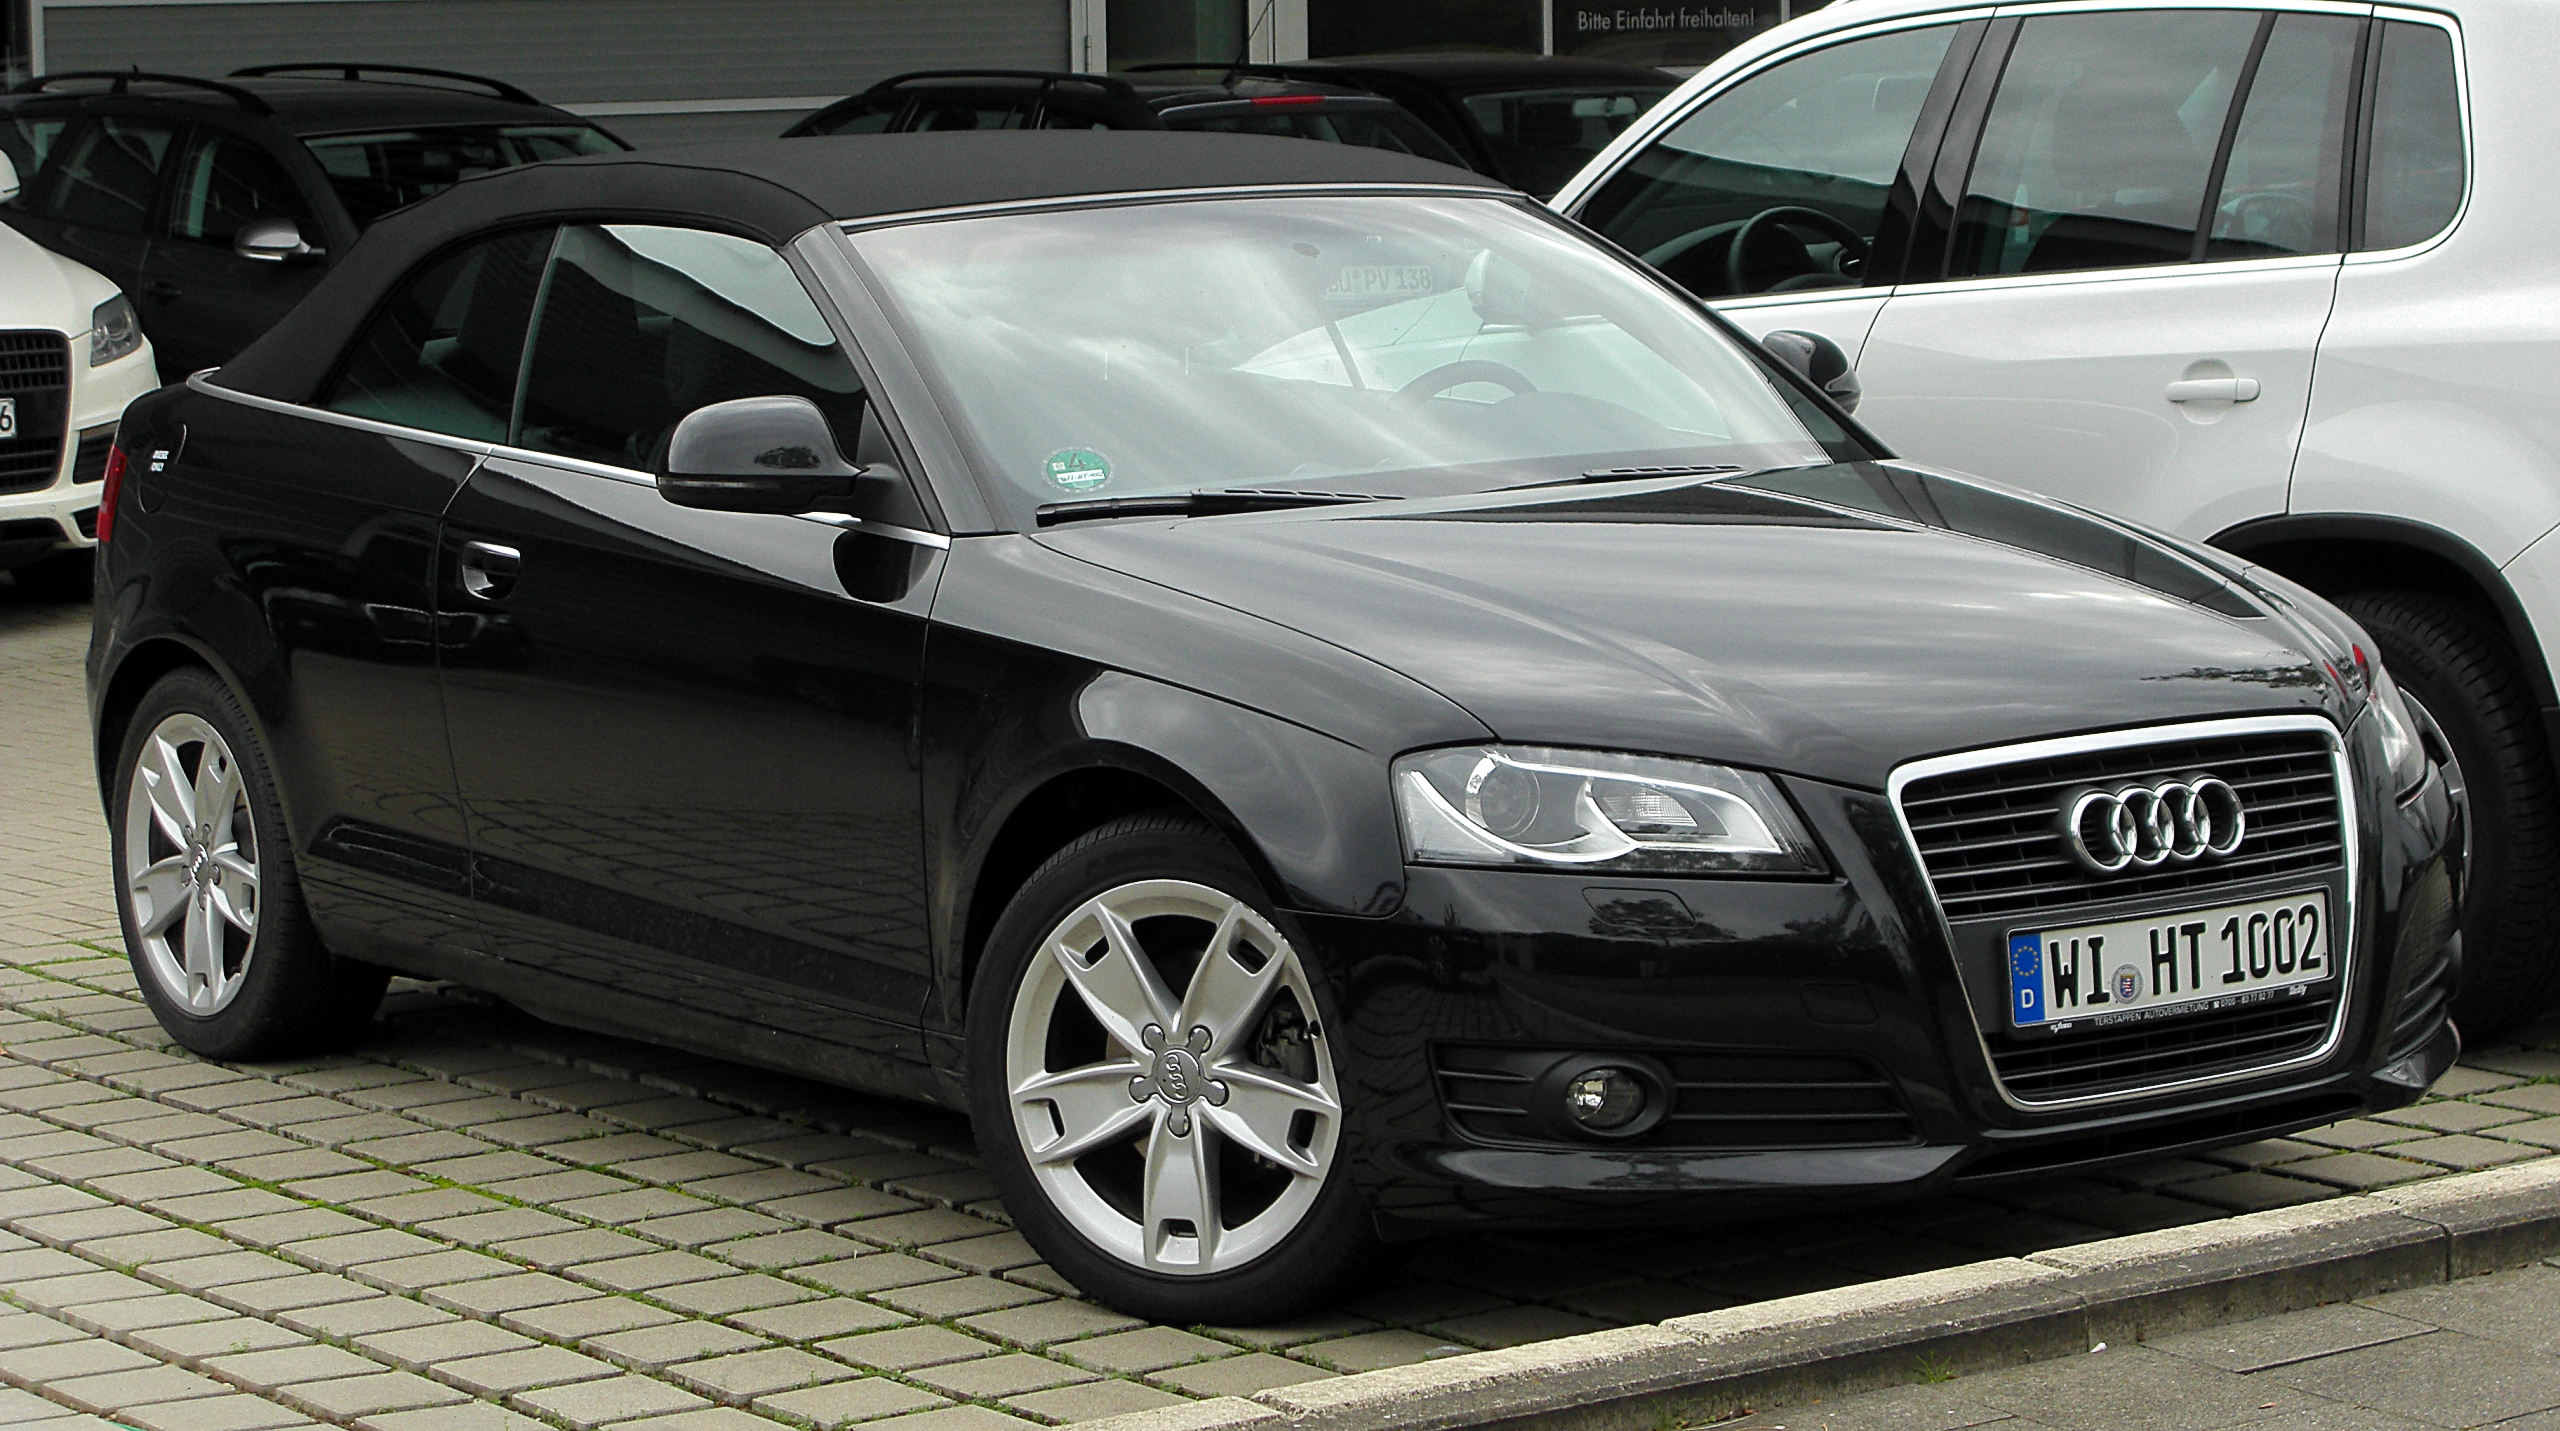 file audi a3 cabriolet 2 0 tdi front wikimedia commons. Black Bedroom Furniture Sets. Home Design Ideas